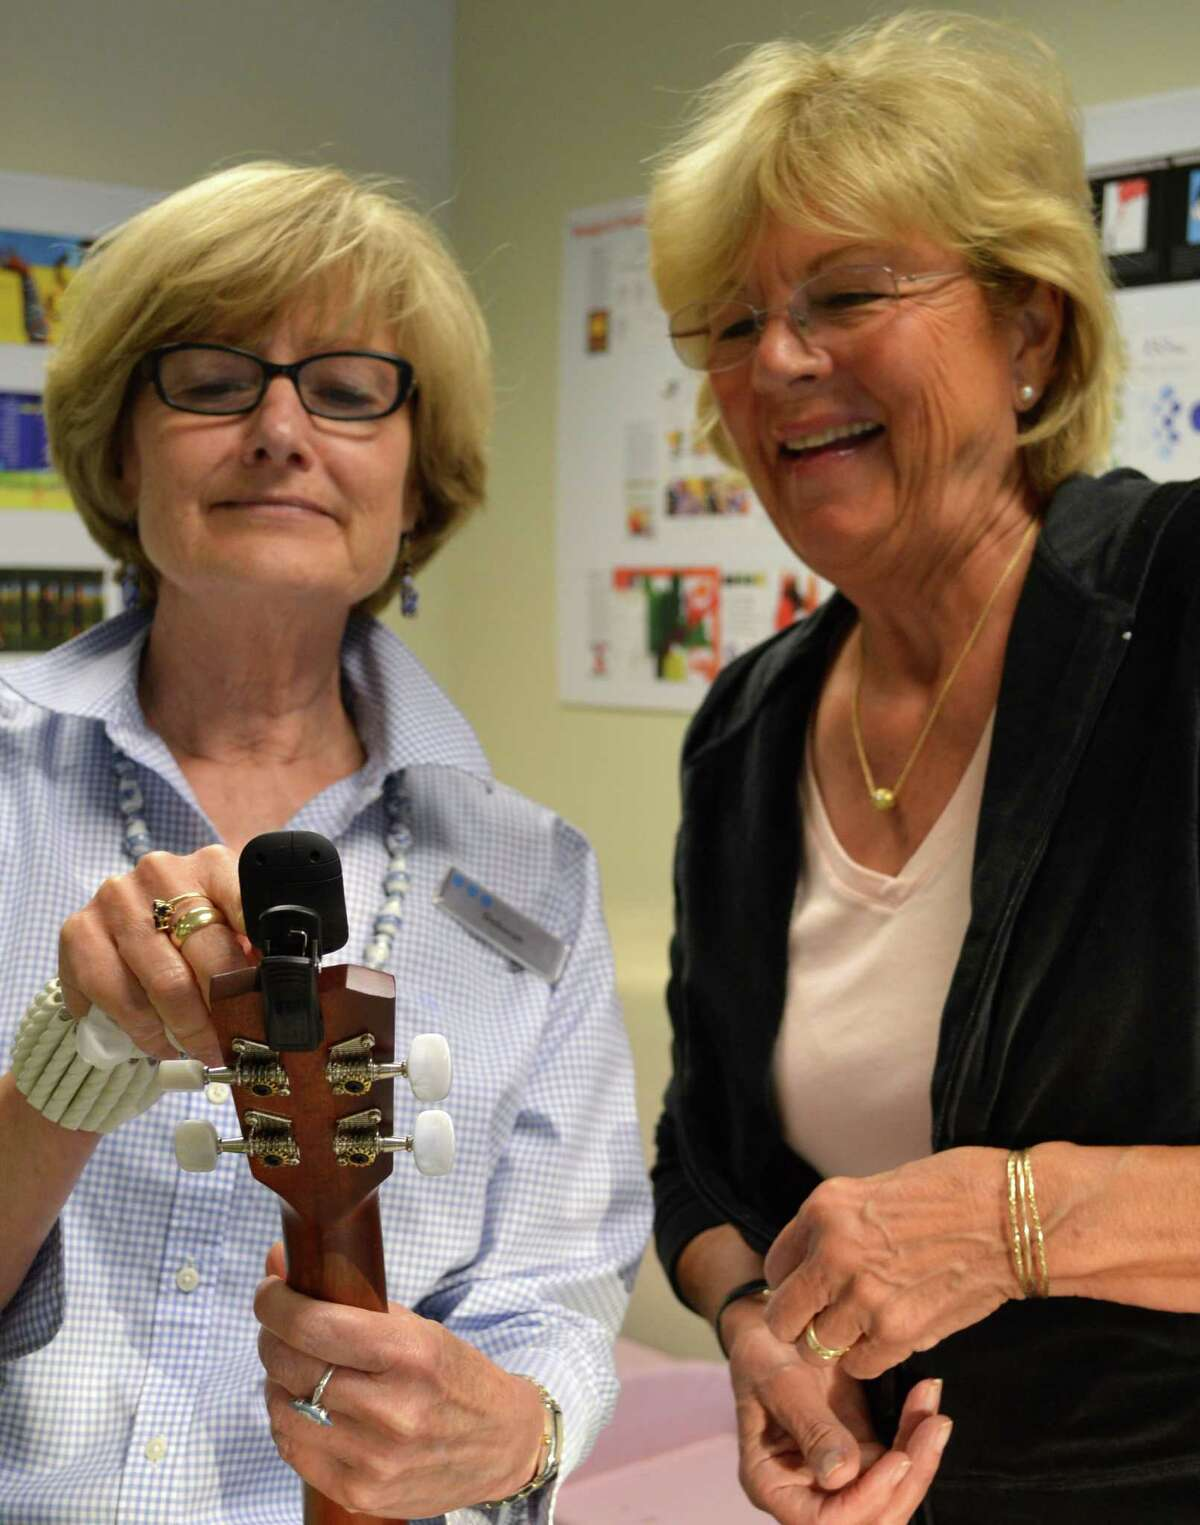 Deborah White, left, who organized the Ukelele Meetup at the library, helps Dolores Noble Steadly, of Westport, tune up.